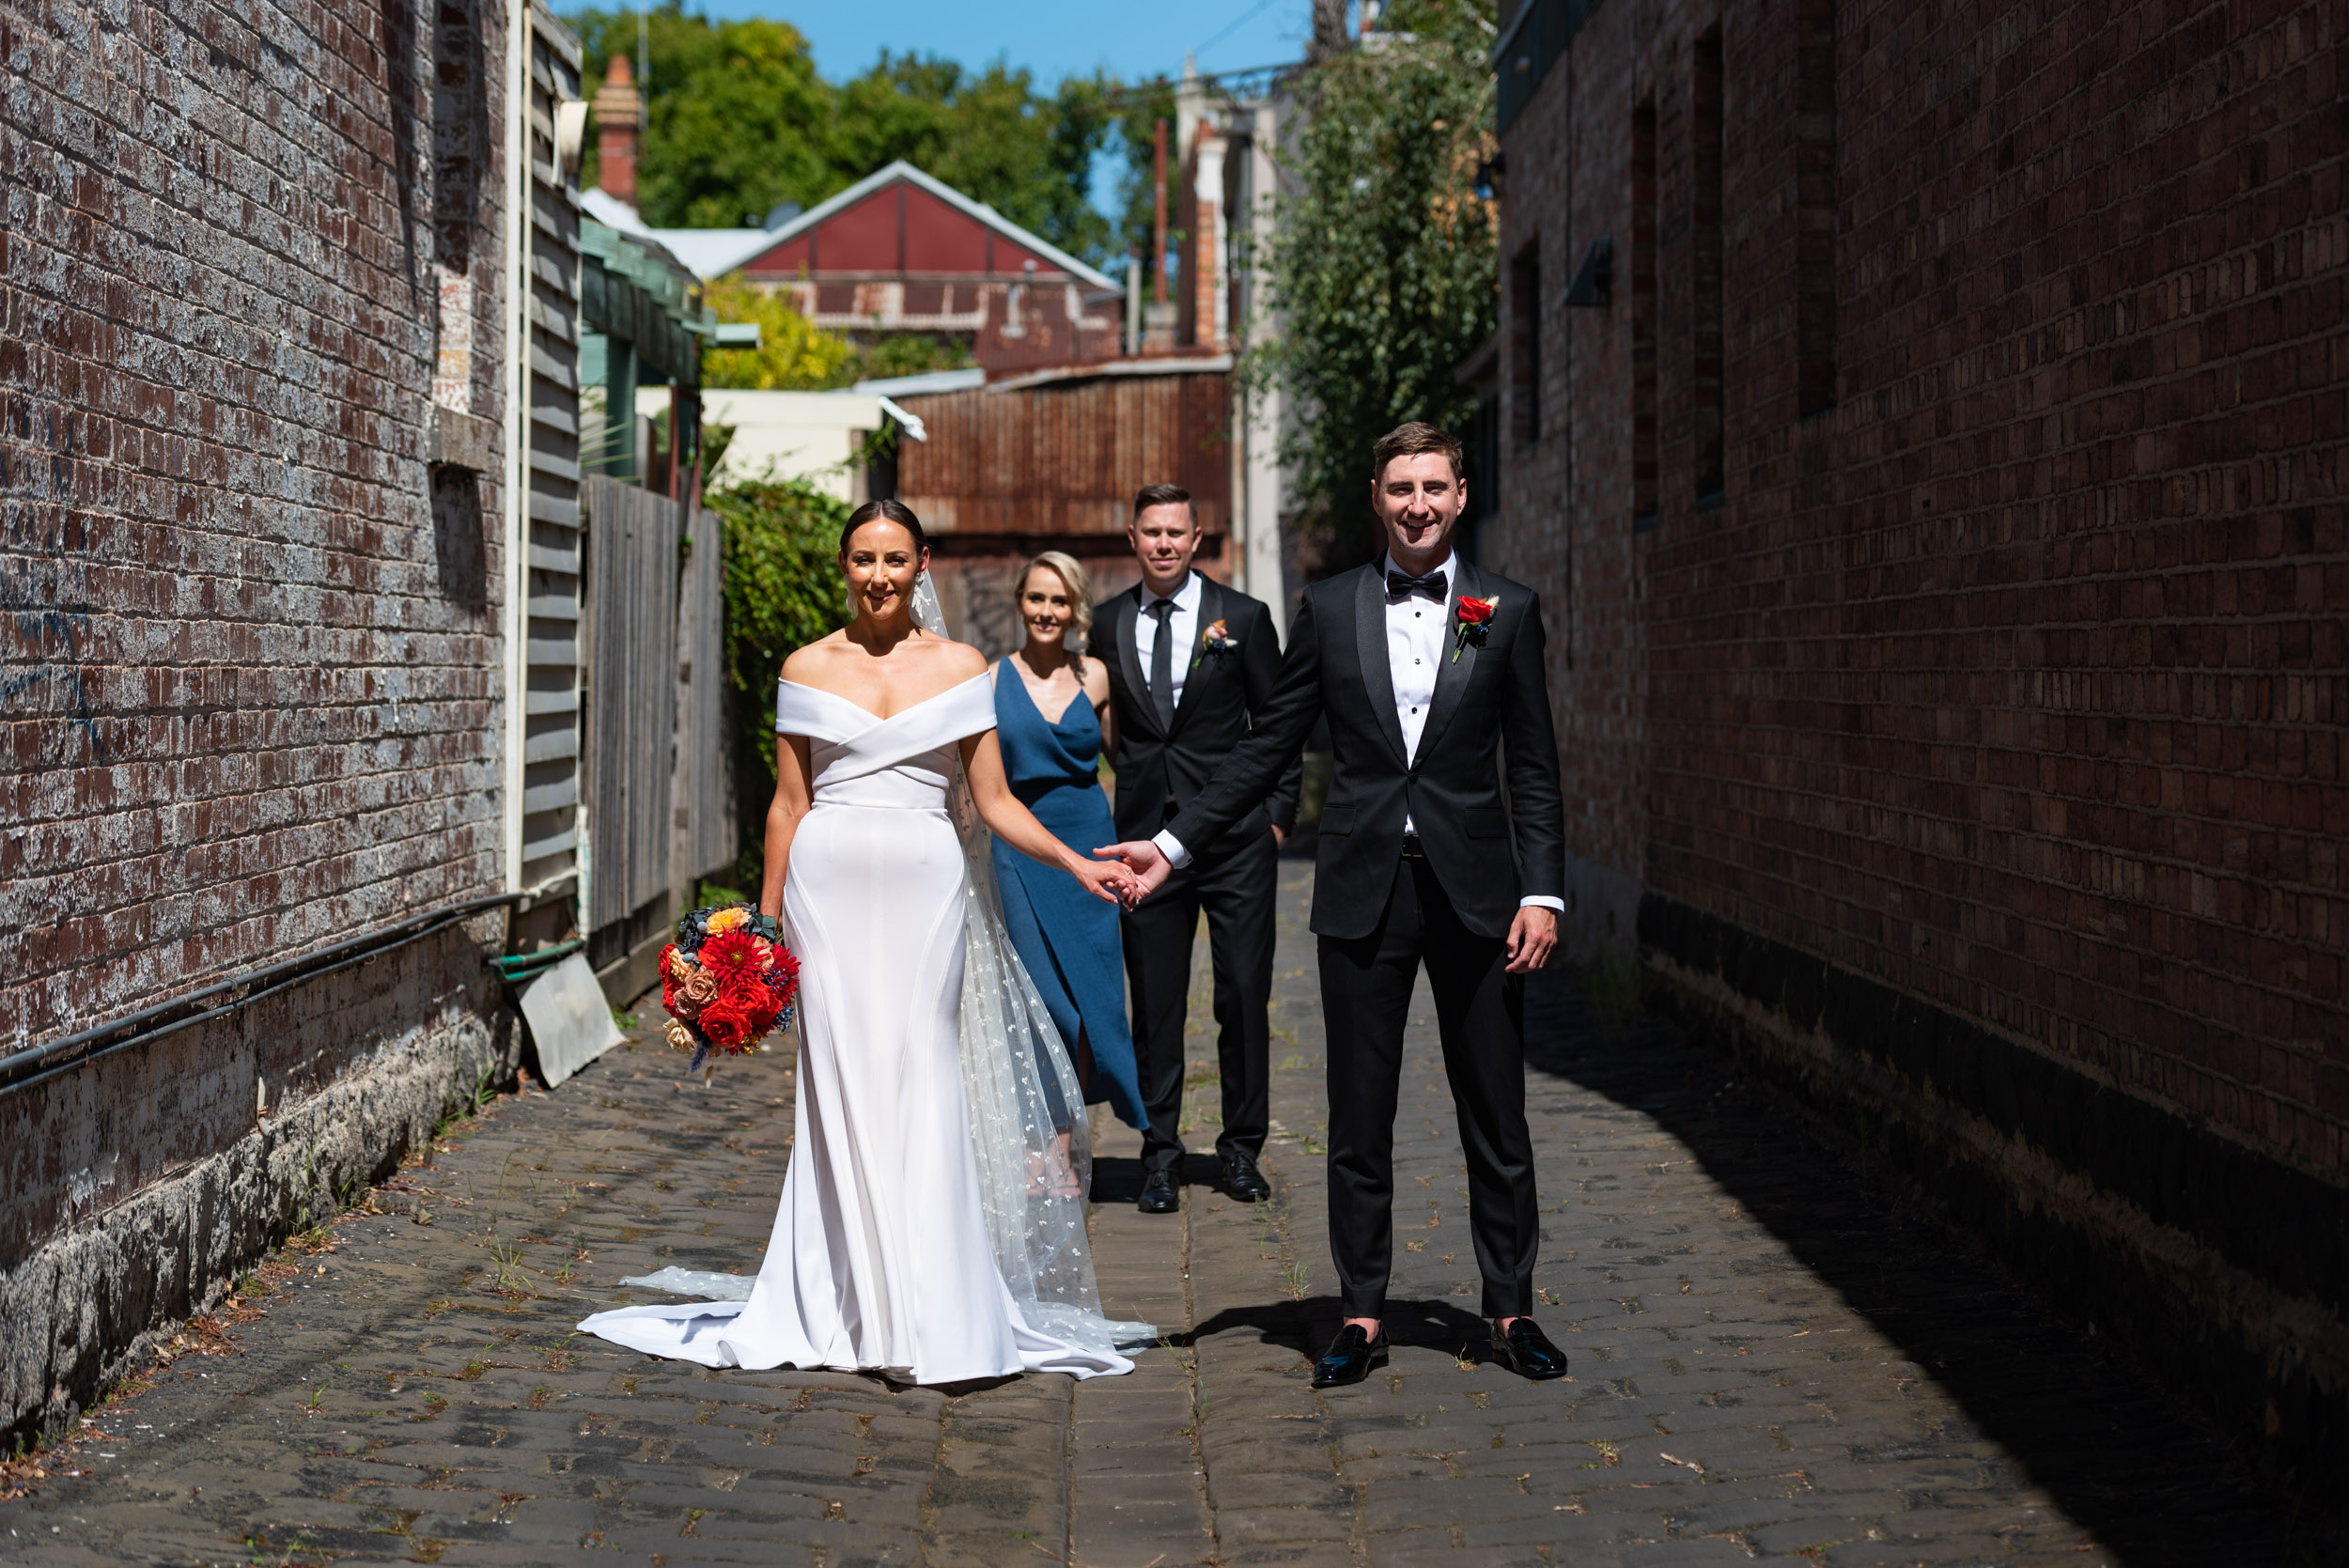 Bridal Party, Bridal Shoot, Wedding Day, Georgia Young Couture, Brad Geddes Photography, Love Alfalfa Florals, Melbourne Laneway, Melbourne Wedding